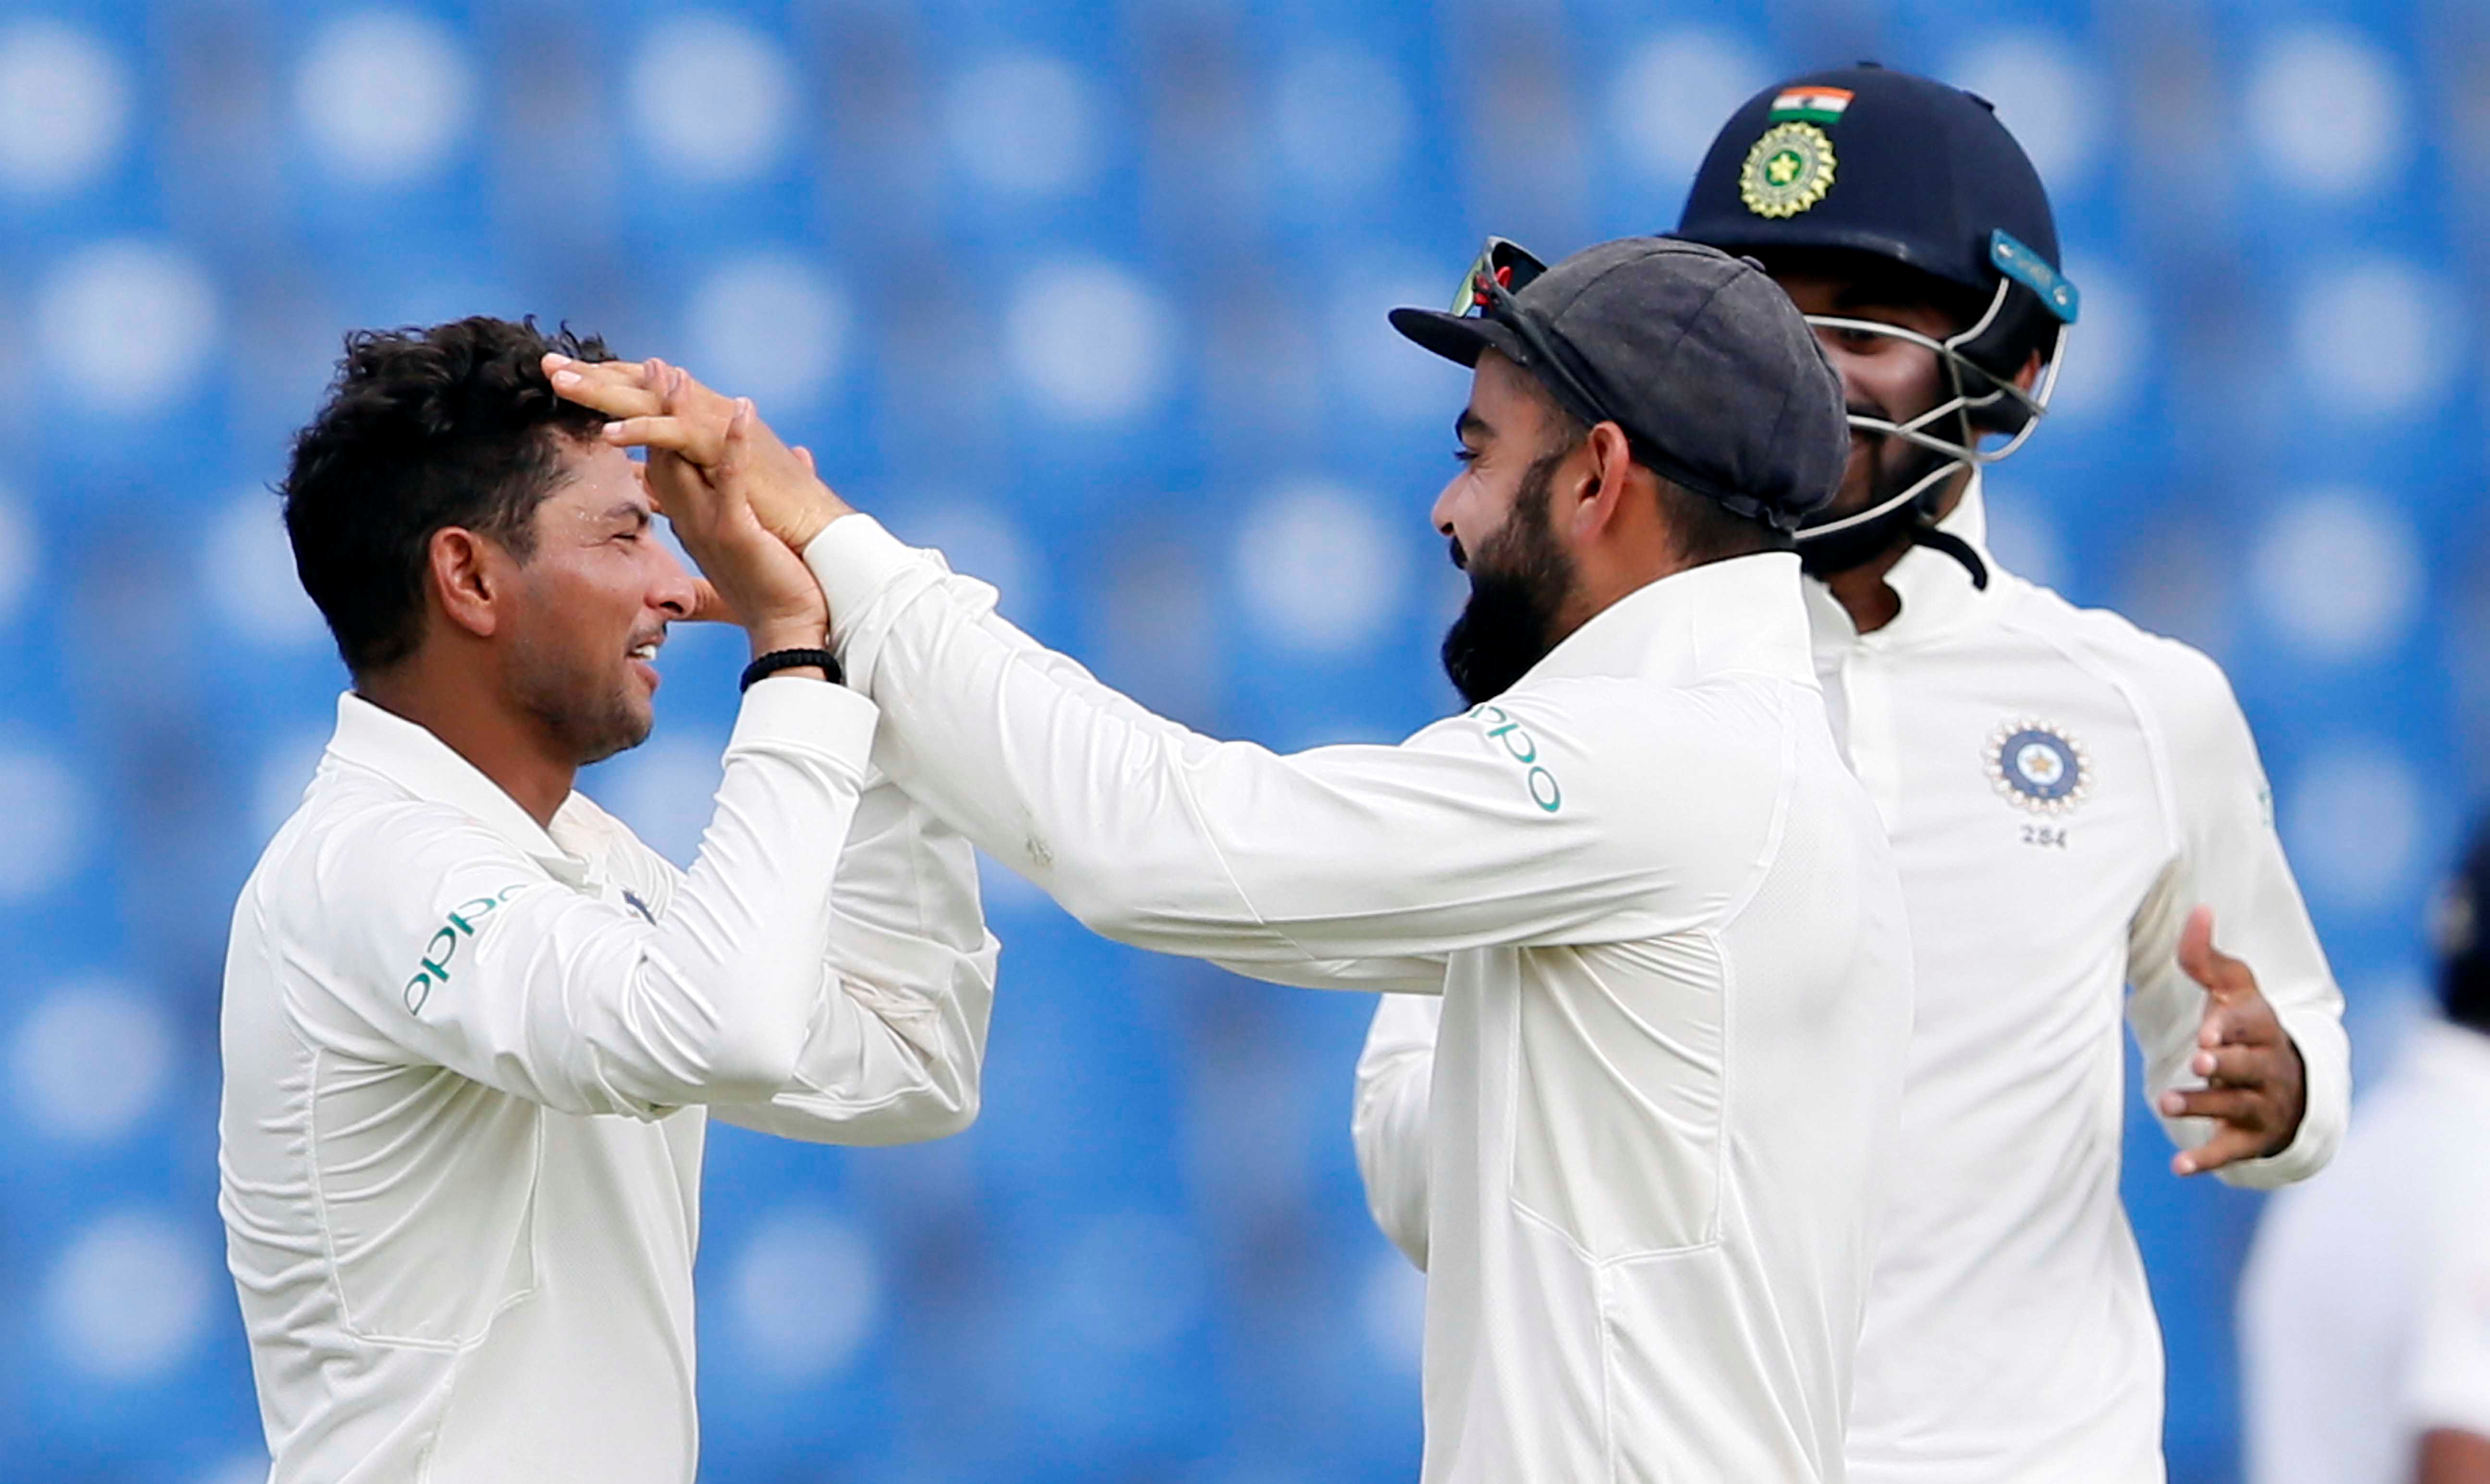 Kuldeep Yadav (left) has picked up three wickets so far. Photo: Reuters